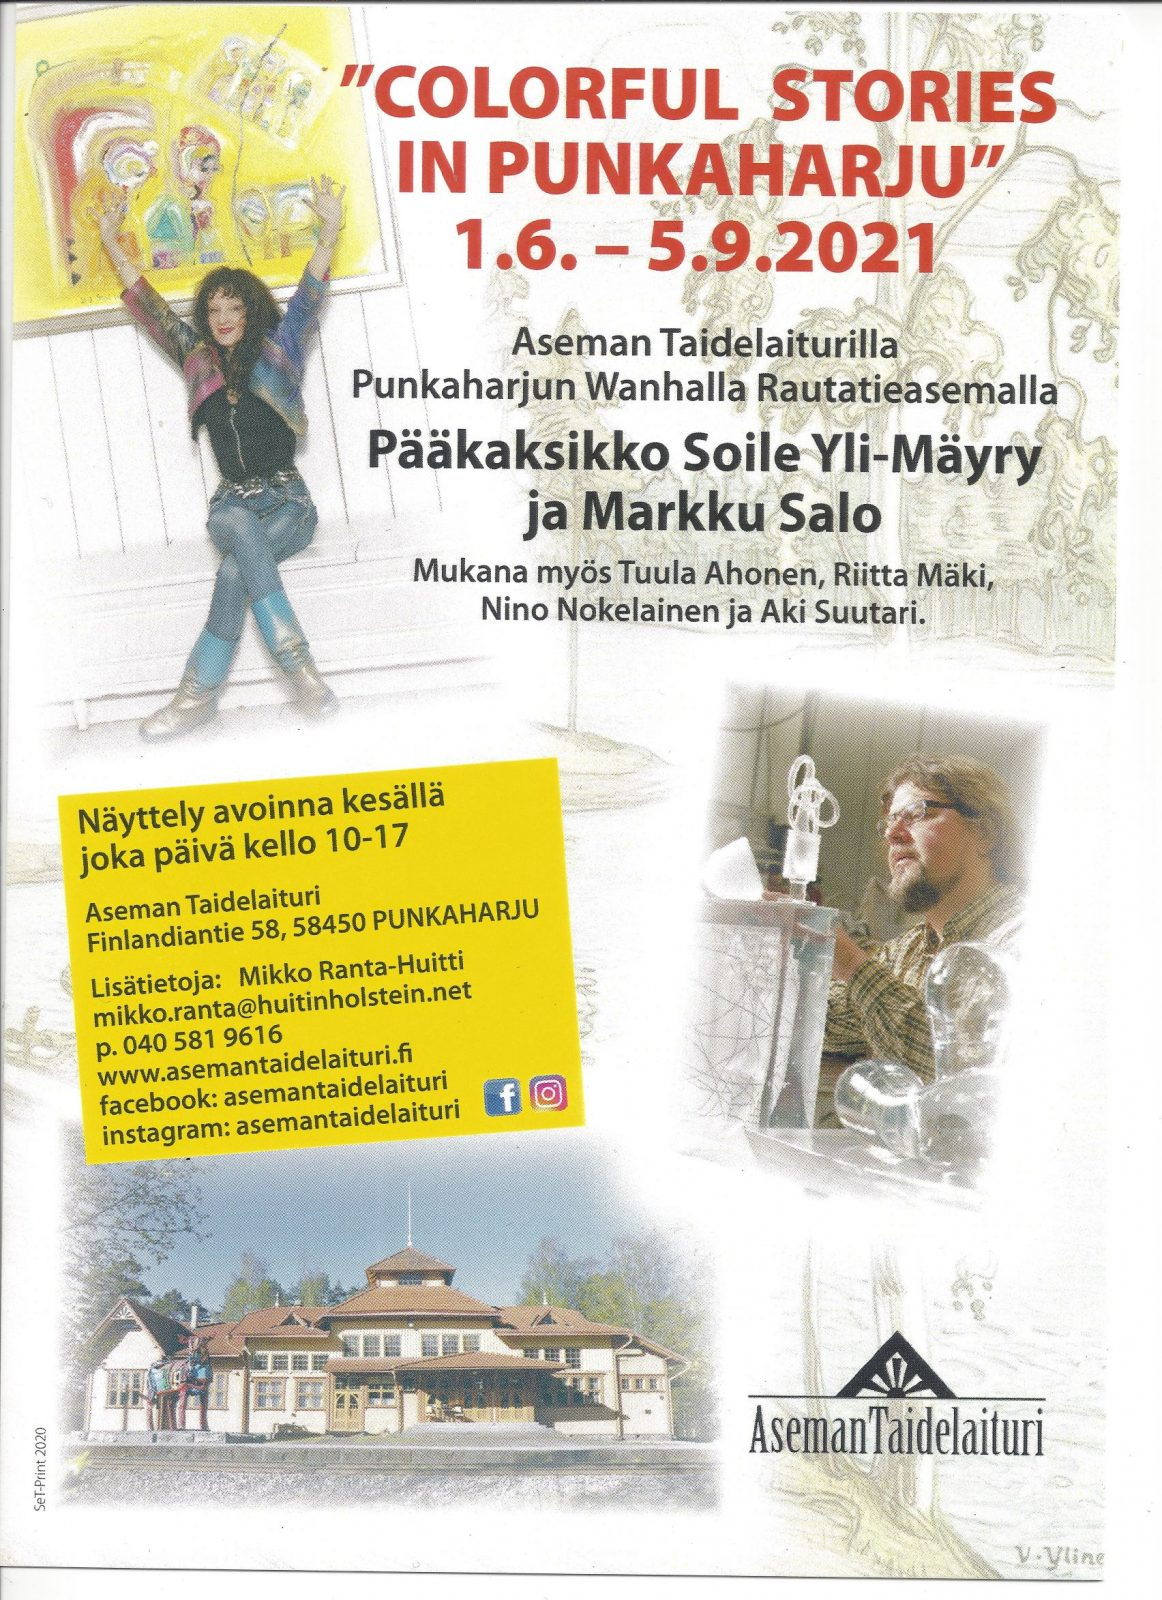 Colorful Stories in Punkaharju 2021